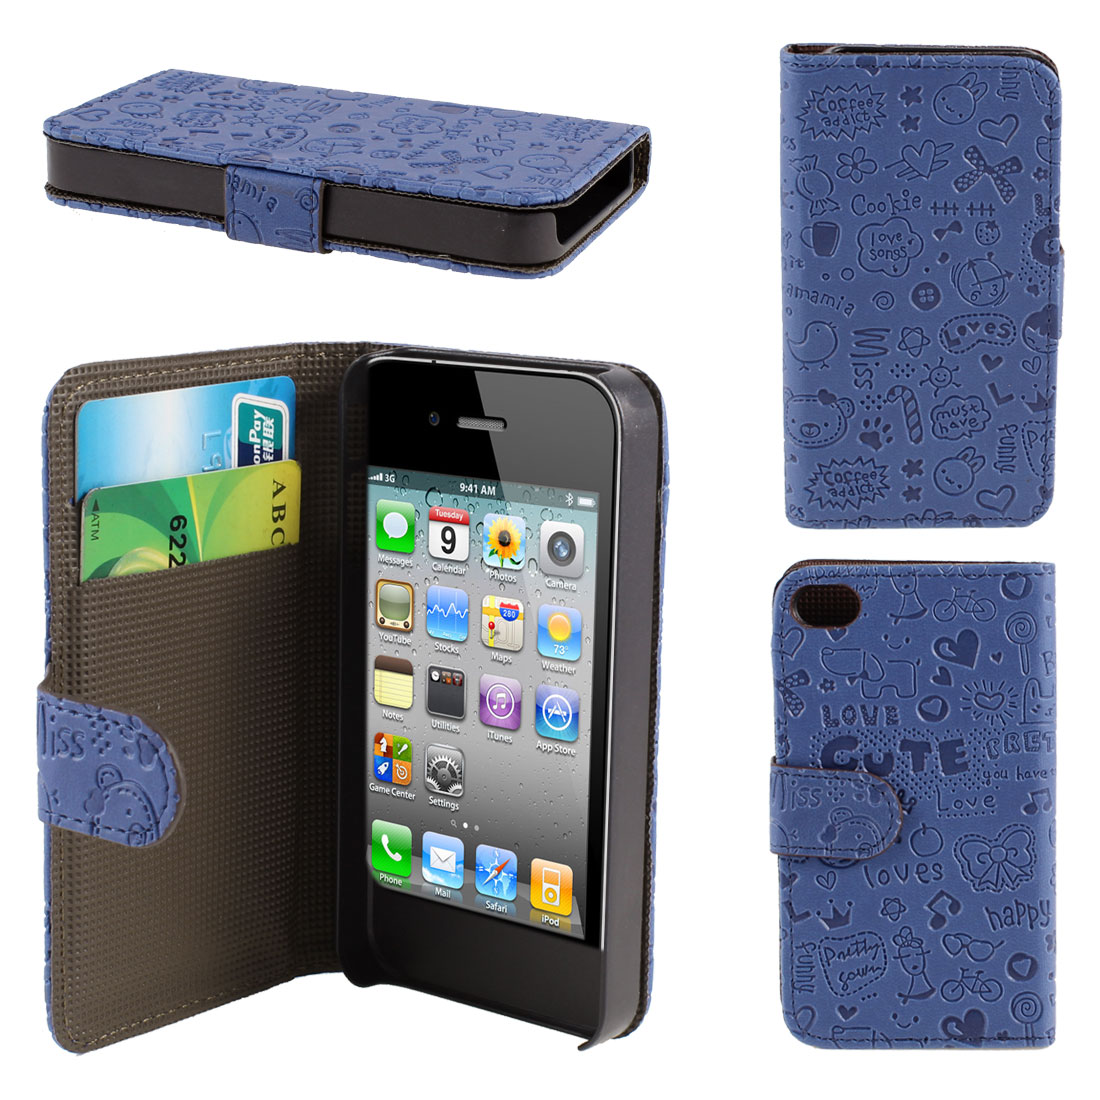 Blue Cute Faerie PU Leather Flip Wallet Case Cover for iPhone 4 4S 4GS 4G 4th